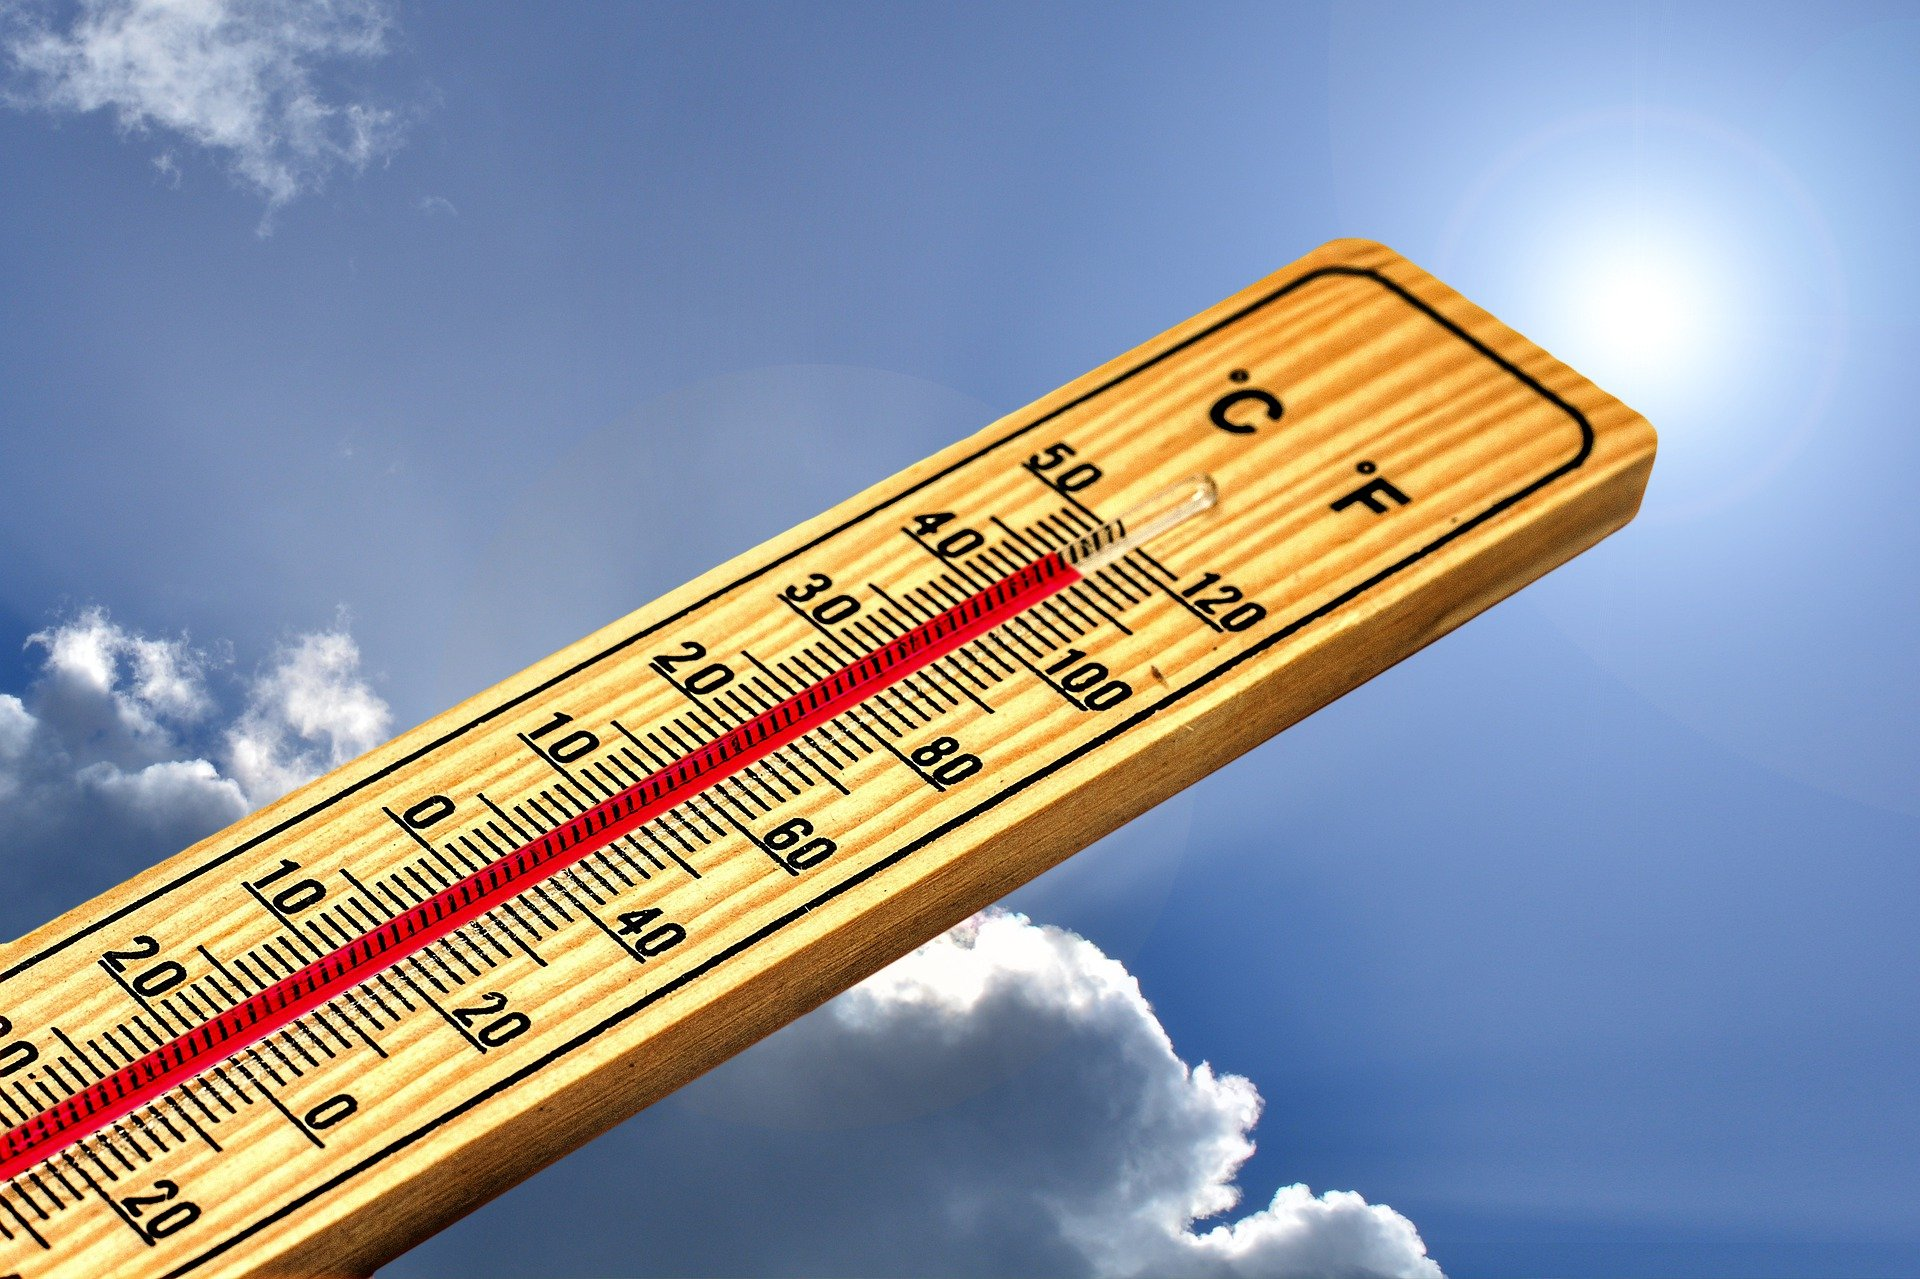 Power and Cooling for IT Systems – It's Hot!